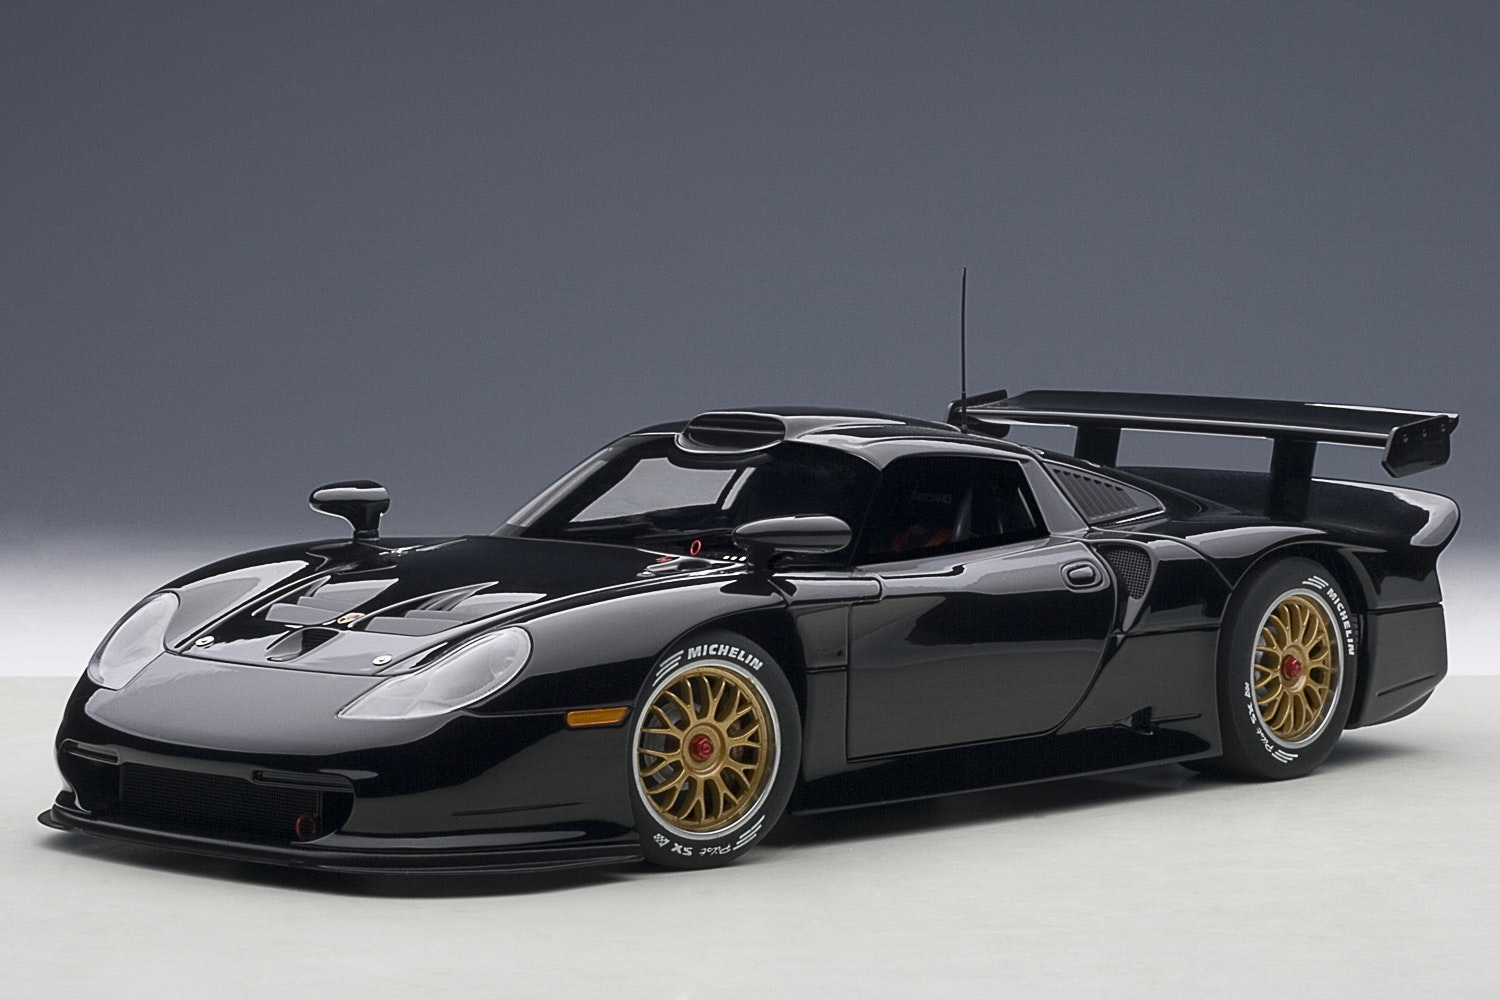 Porsche 911 GT1 1997, Plain Body Version, Black